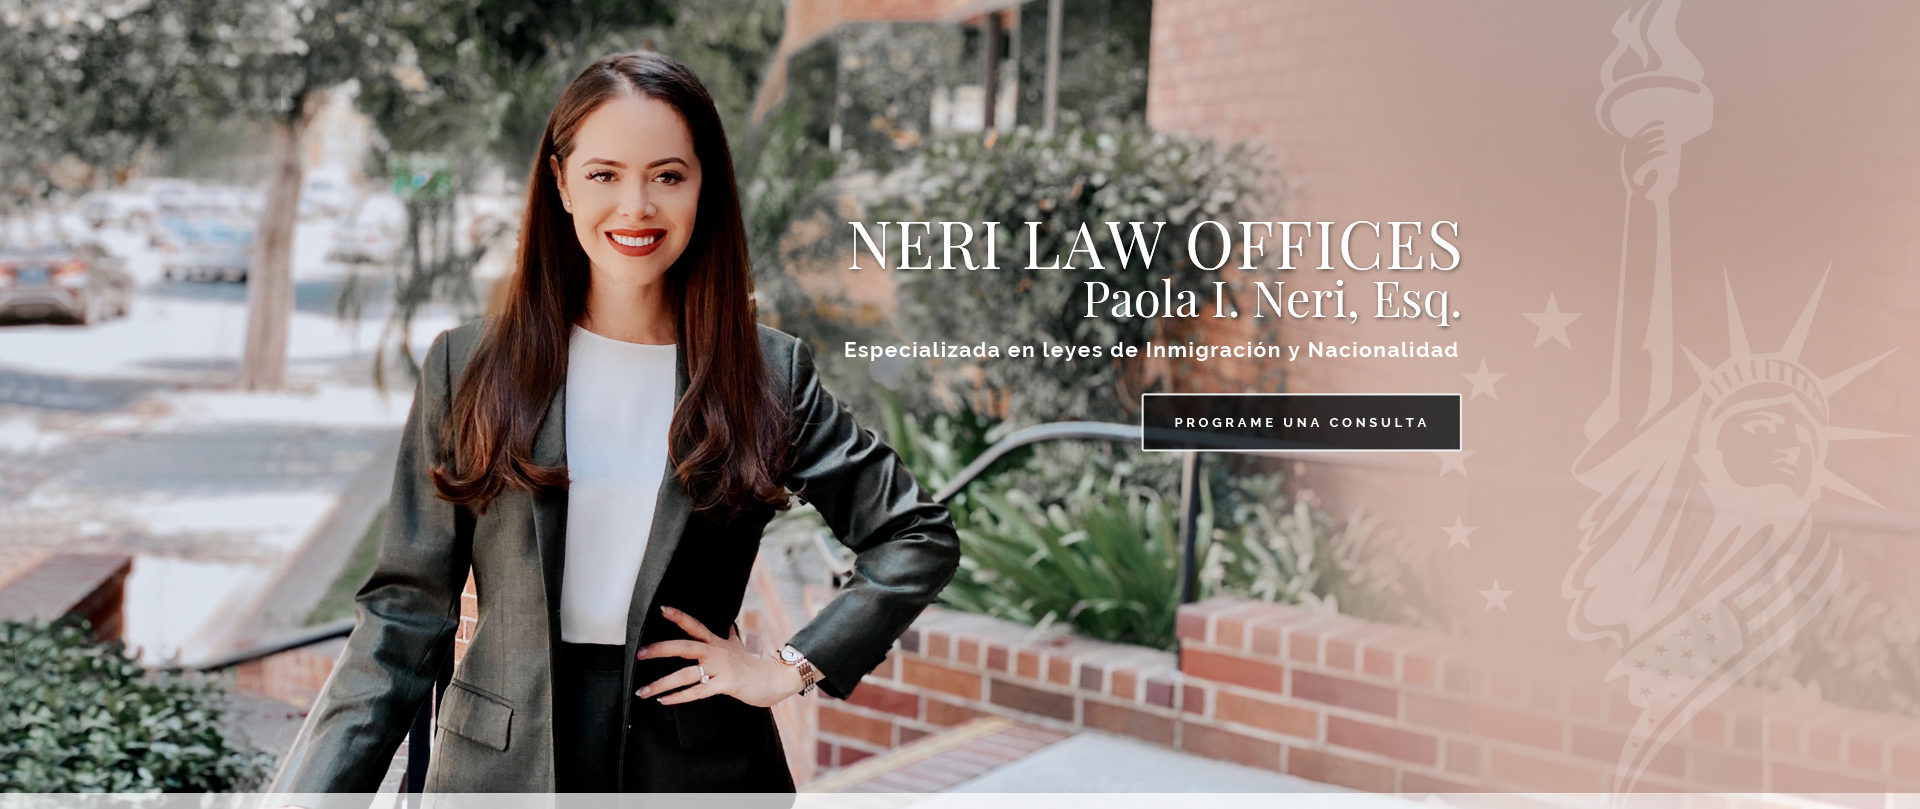 Immigration Attorney_Neri Law Offices Specializing in Immigration and Nationality Law